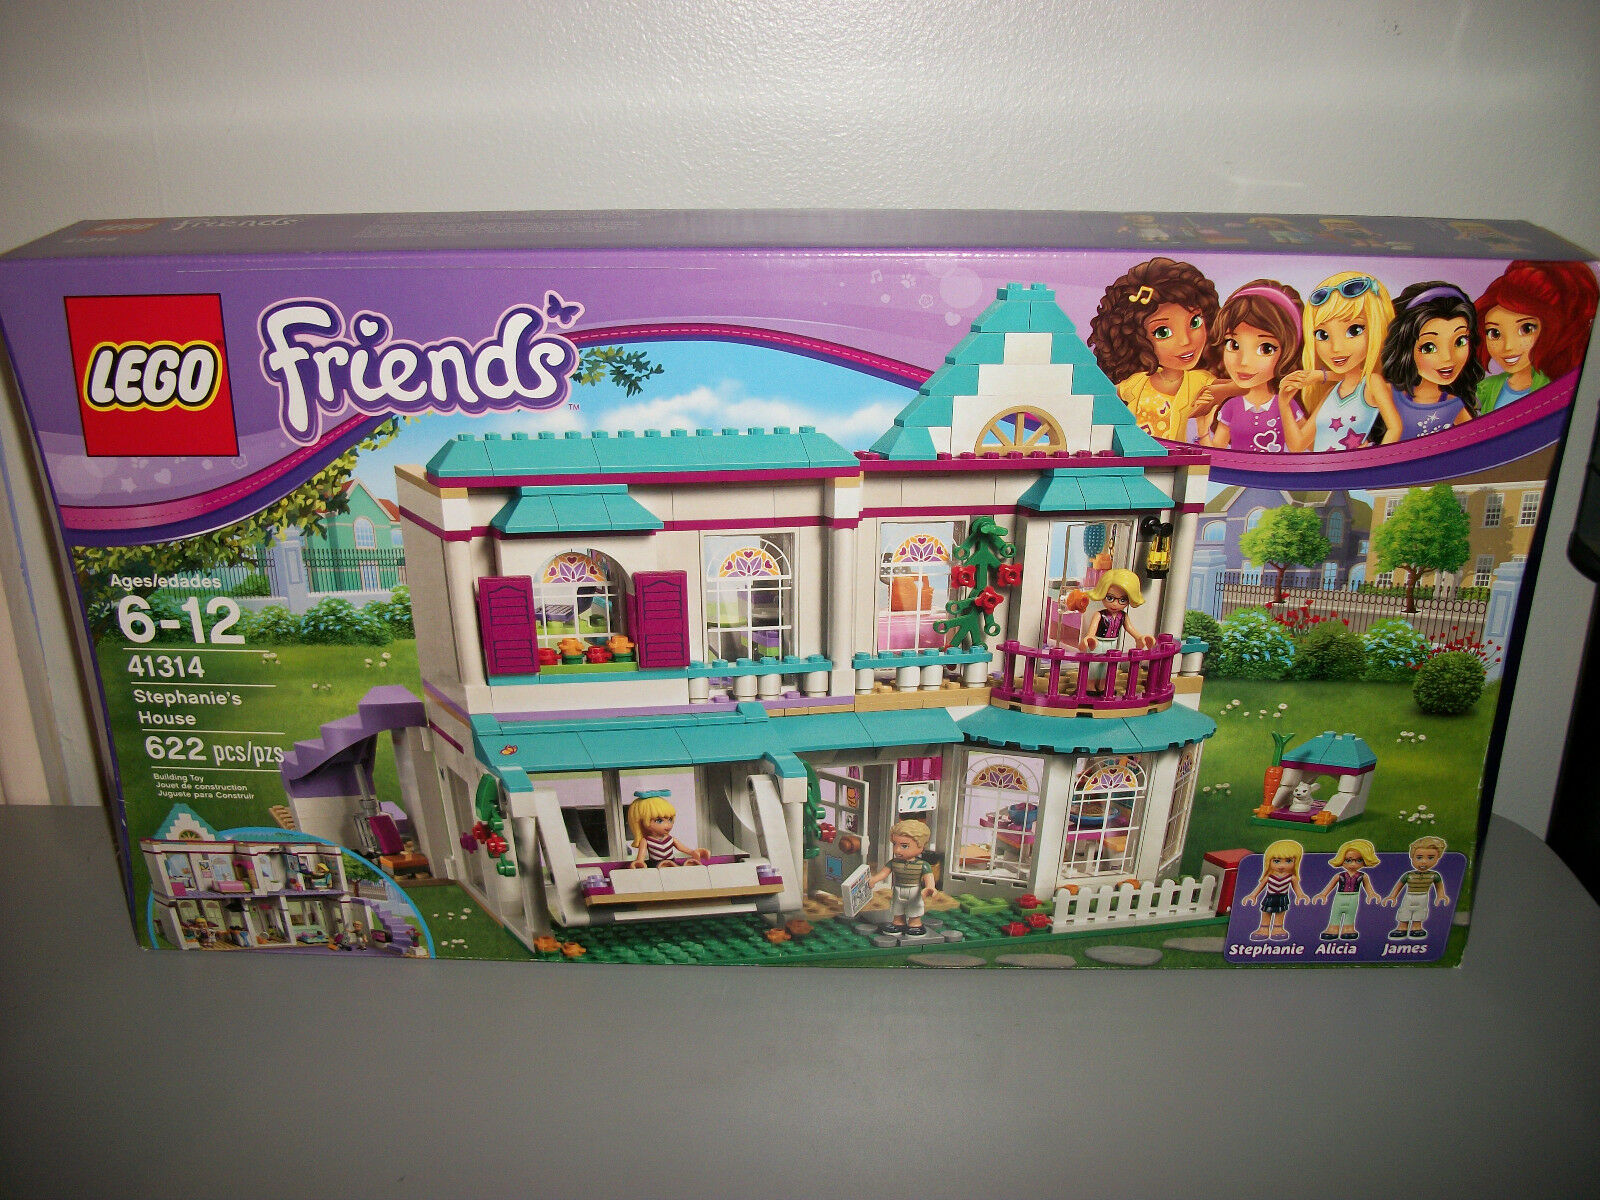 Lego Friends Stephanie's House 41314 New Gift Toy Toy Toy Sealed 2bf7a3